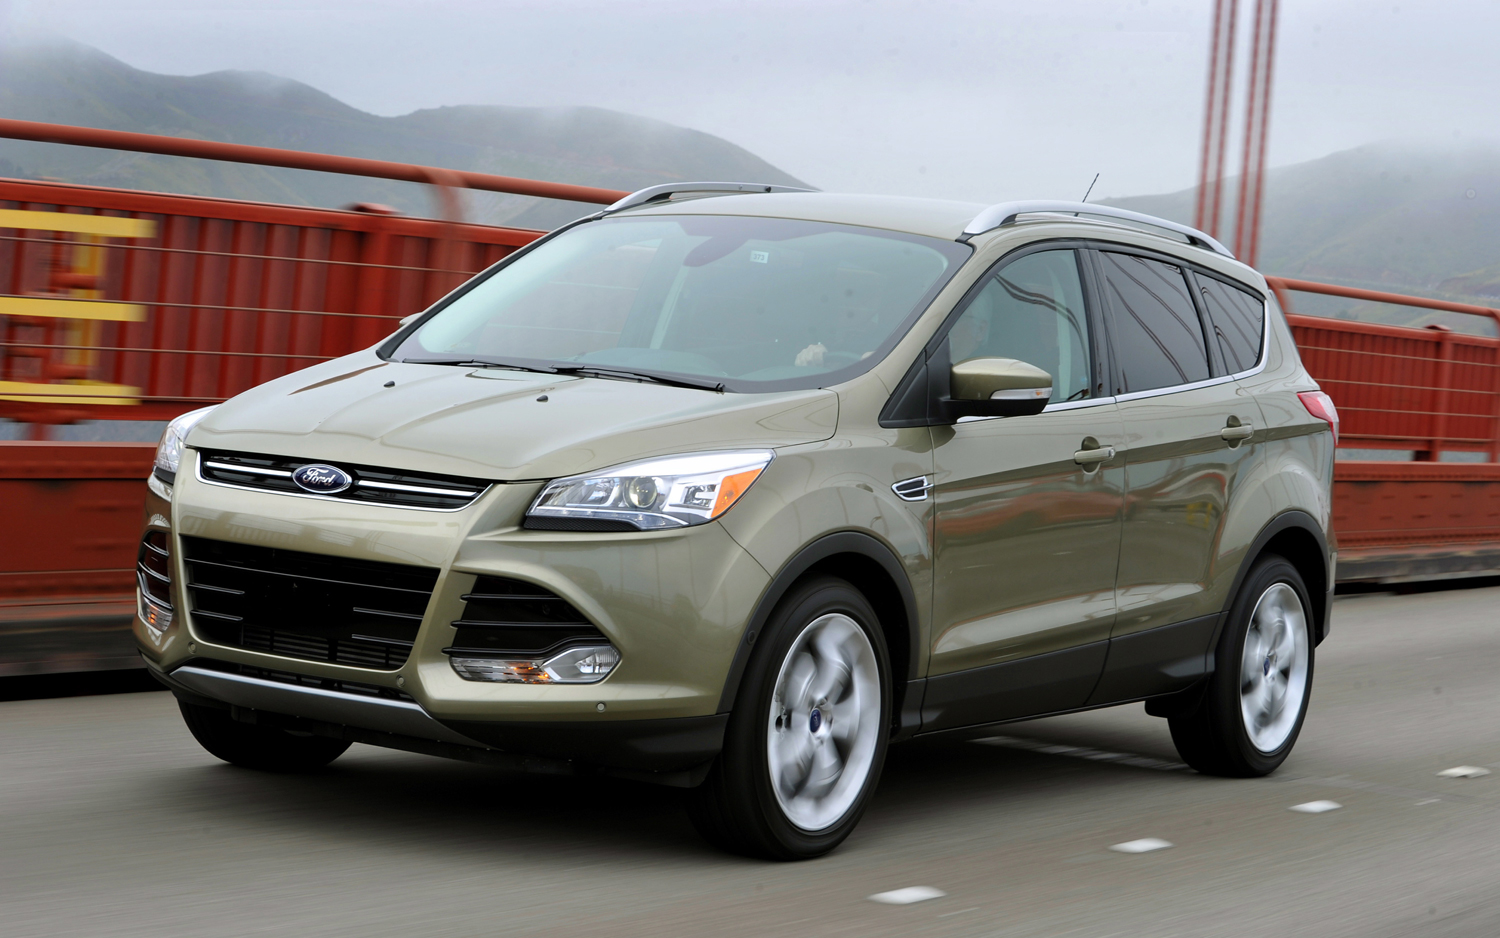 2013 ford escape ecoboost first drive